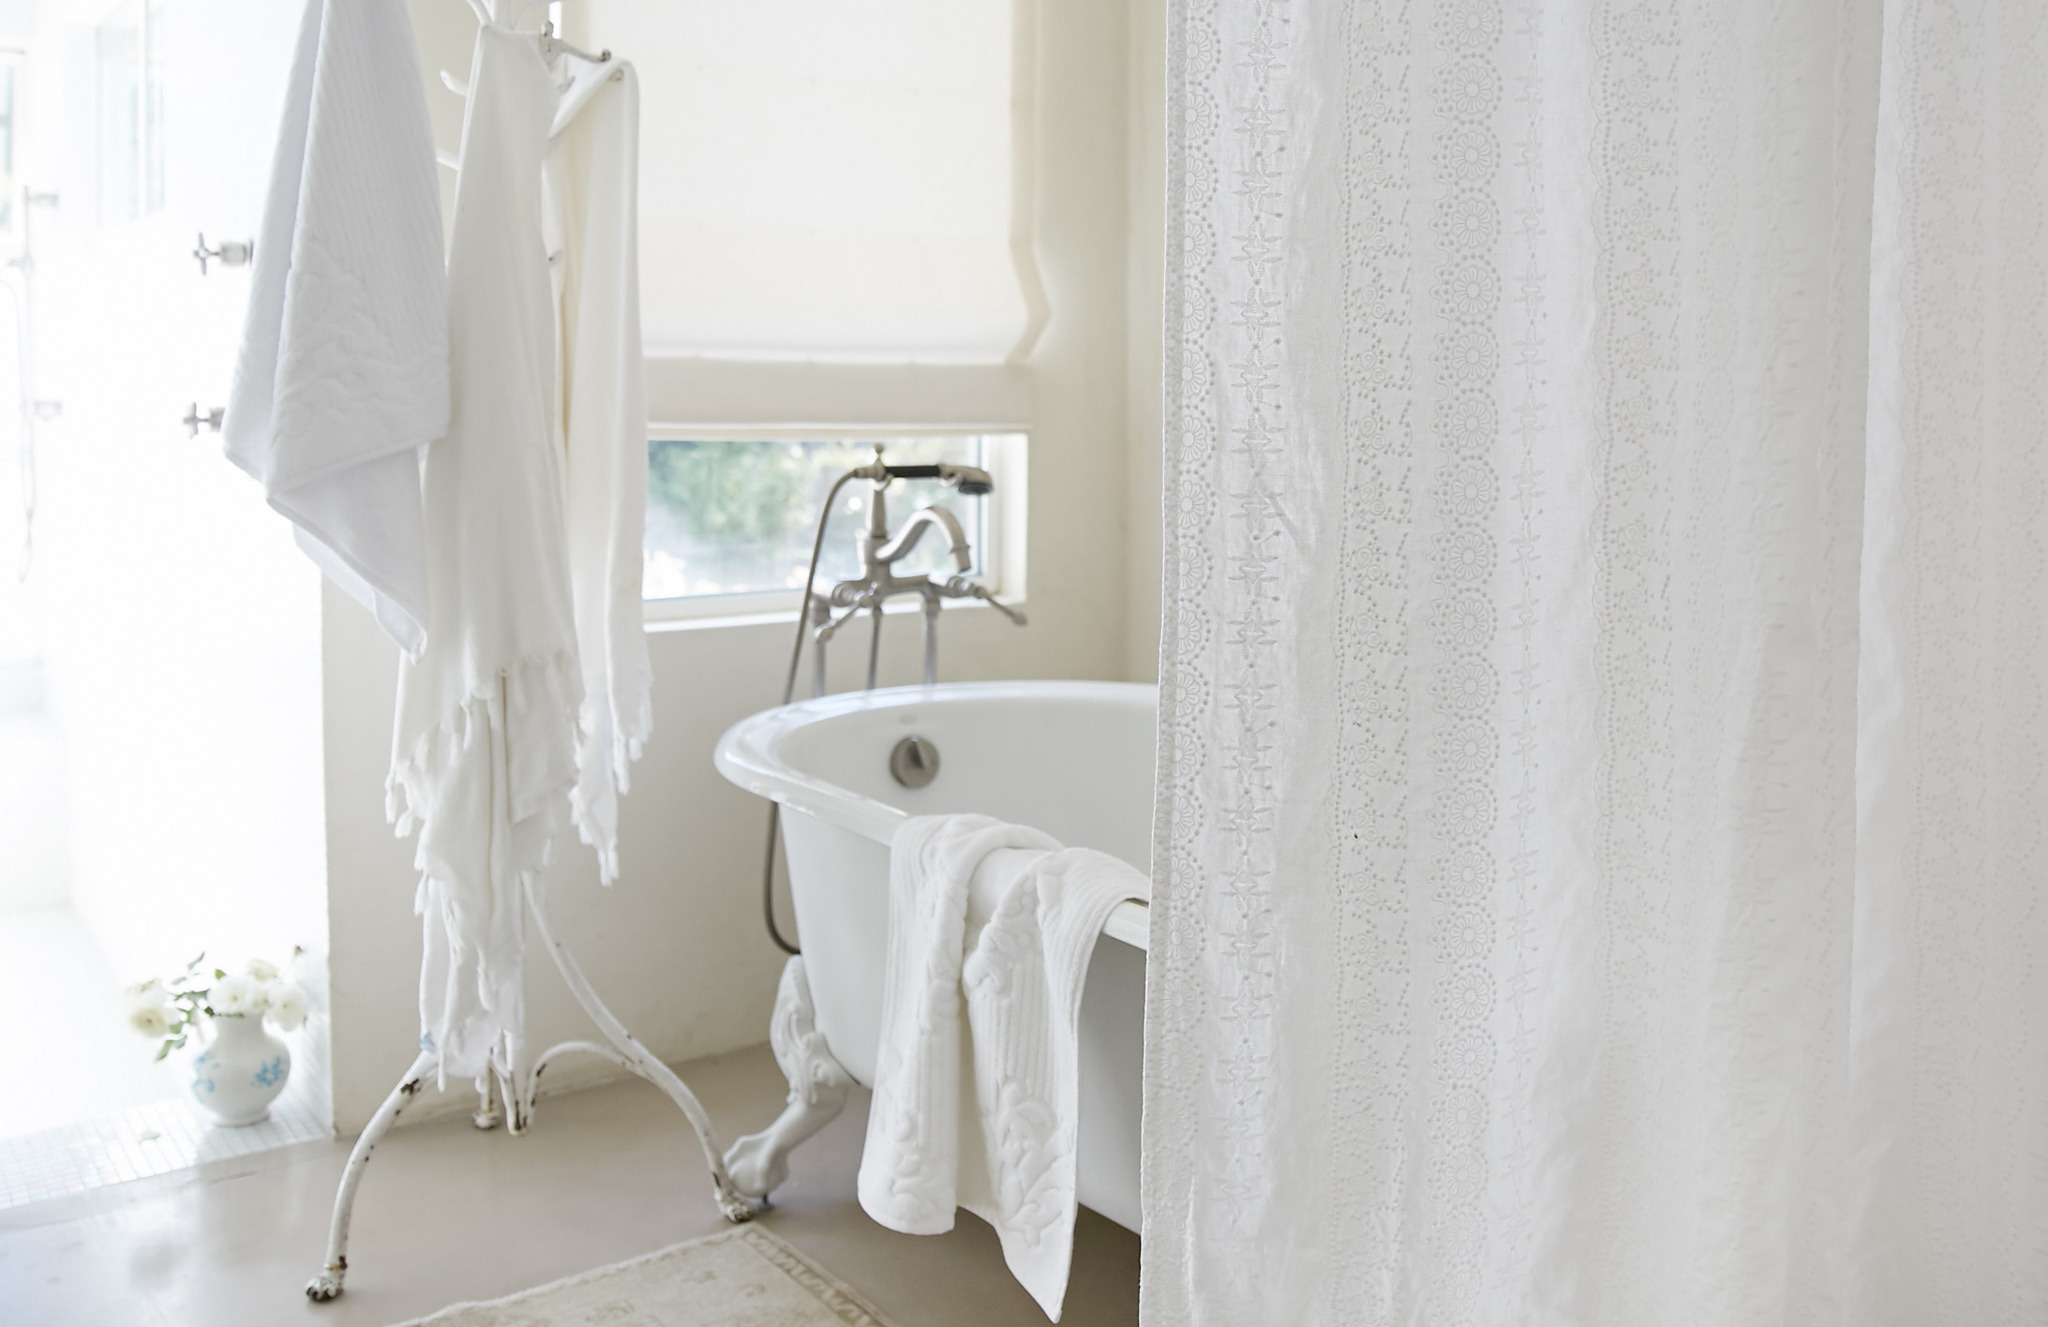 Shabby Chic Decor finds await you in this inspiring lineup of interior design inspiration. #shabbychic #interiordesignideas #decoratingideas #rachelashwell #whitebathroom